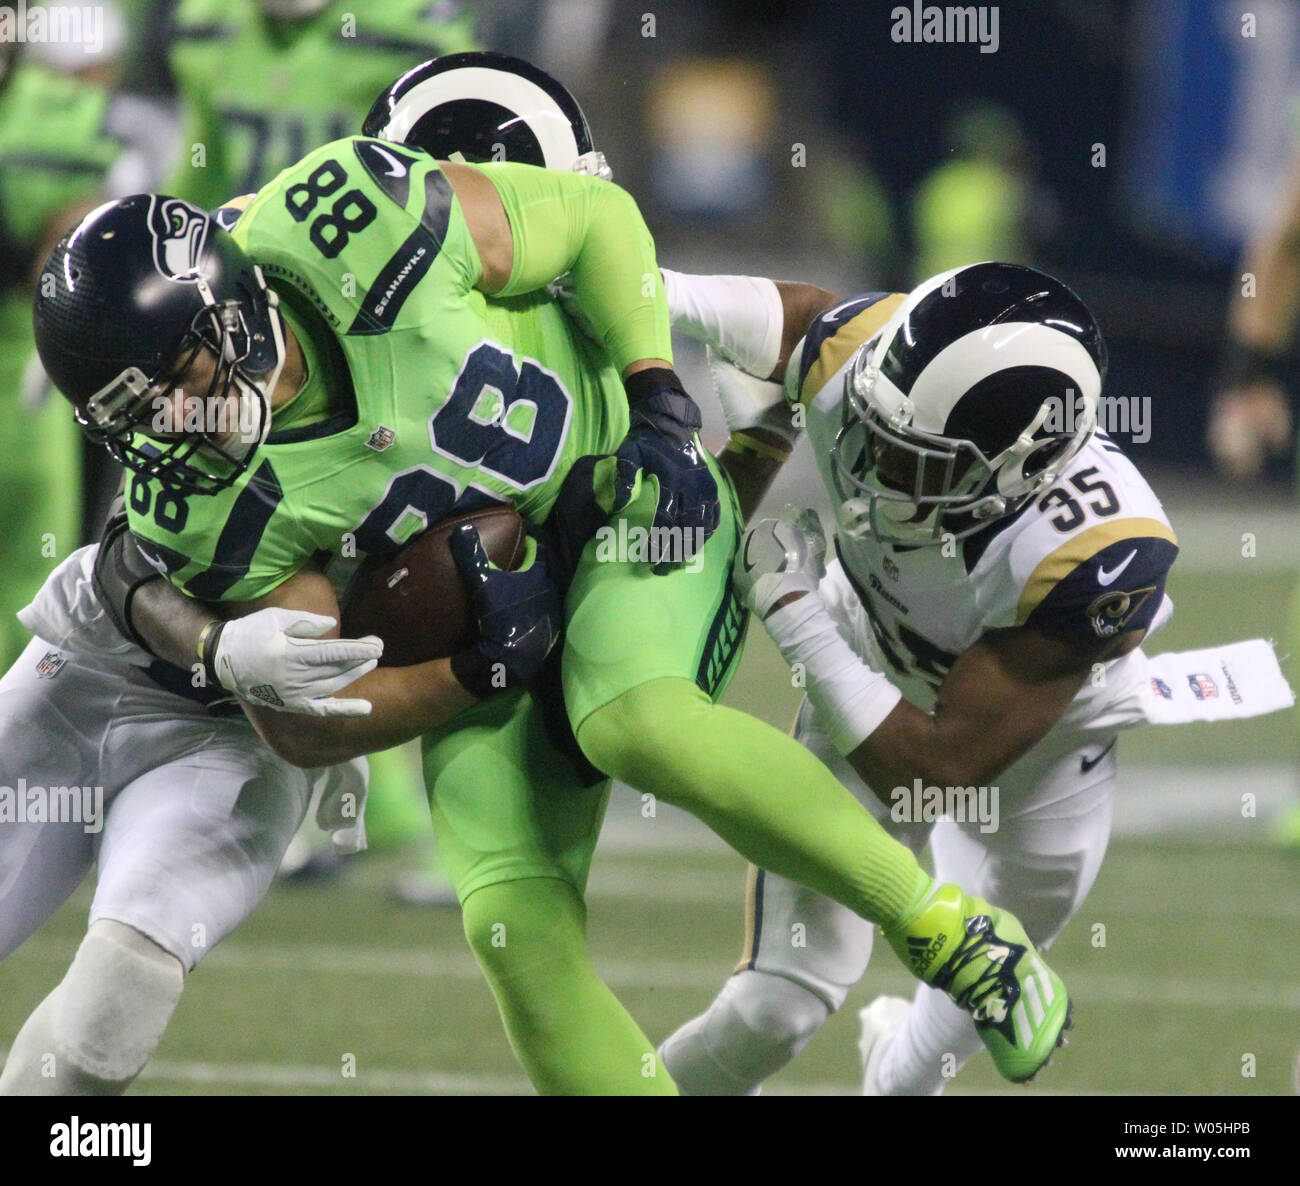 Seattle Seahawks Tight End Jimmy Graham 88 Fights Through The Tackles Of Los Angeles Rams Defensive Back Michael Jordan 35 And Los Angeles Rams Defensive Back Cody Davis 38 After Catching A